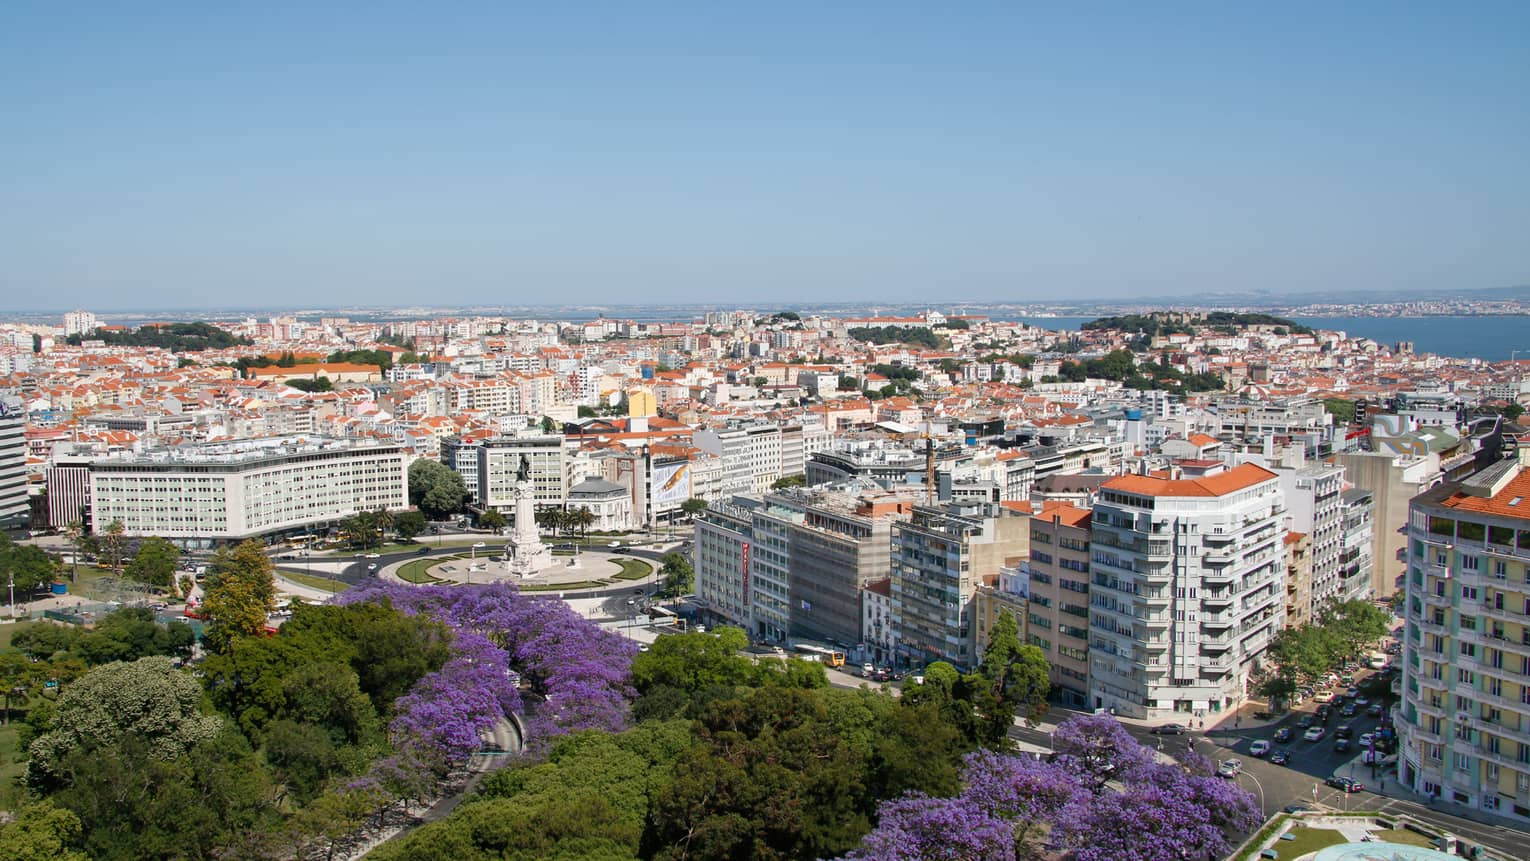 View over sunny Lisbon skyline with gardens, high rise buildings, rooftops